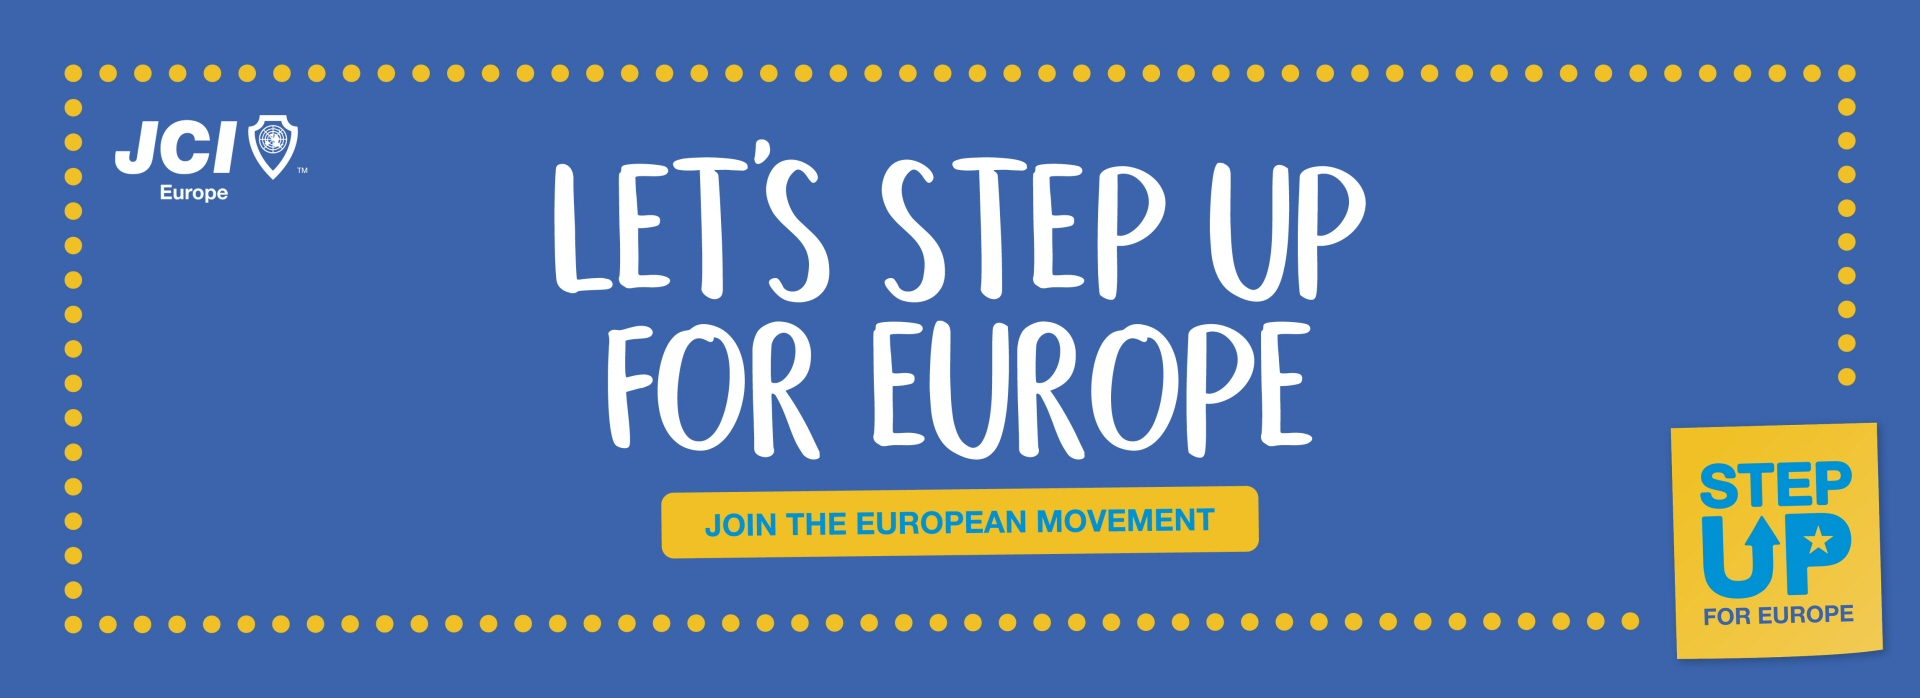 Step Up For Europe - Join The European Movement